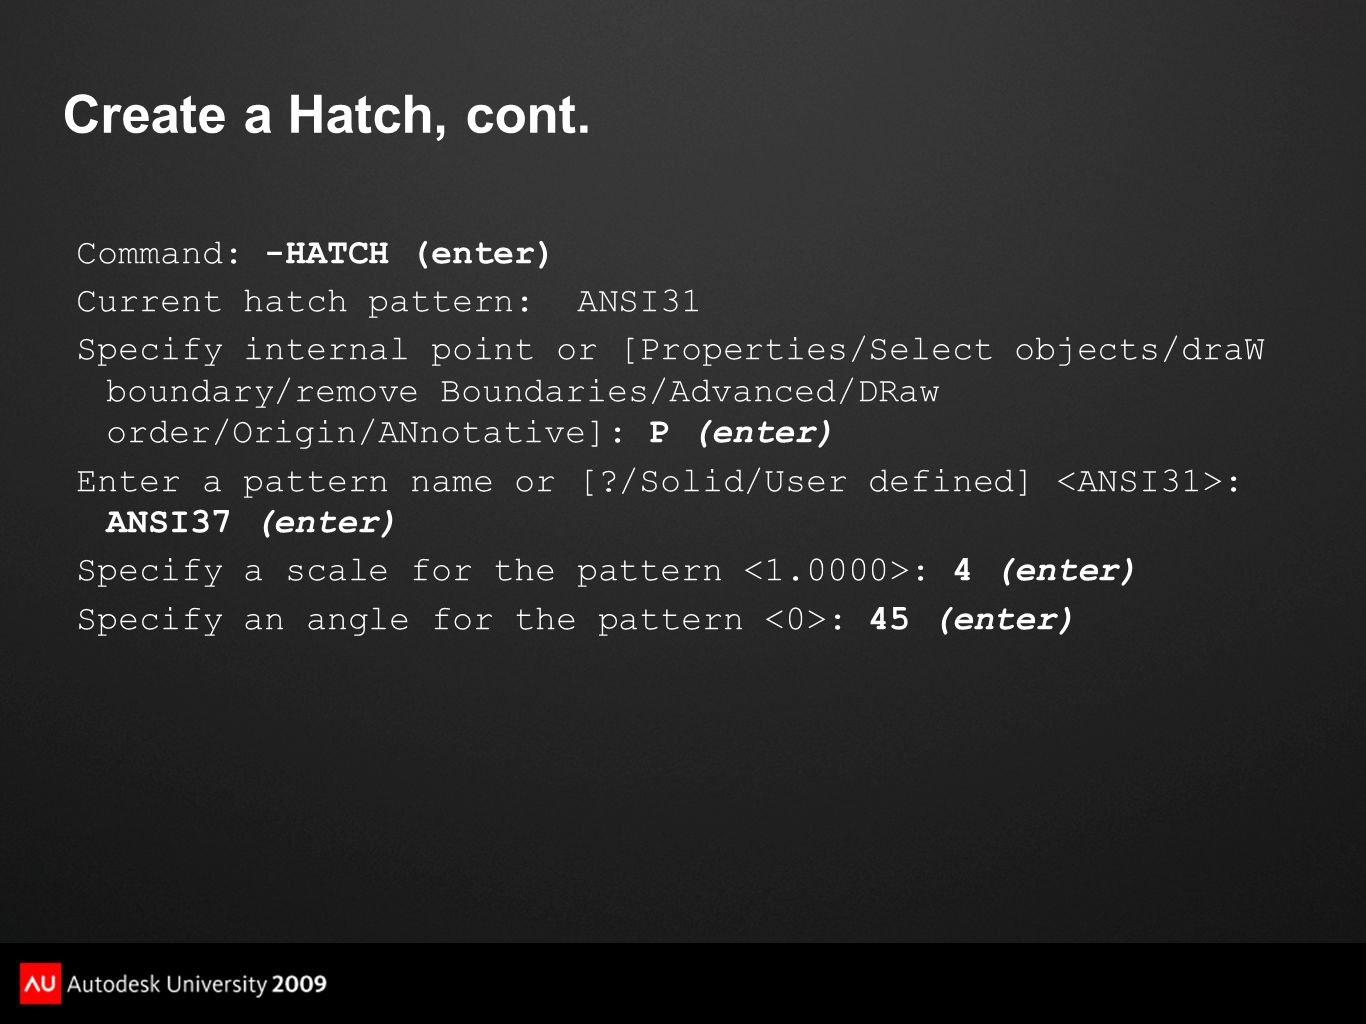 Create a Hatch, cont. Command: -HATCH (enter) Current hatch pattern: ANSI31 Specify internal point or [Properties/Select objects/draW boundary/remove